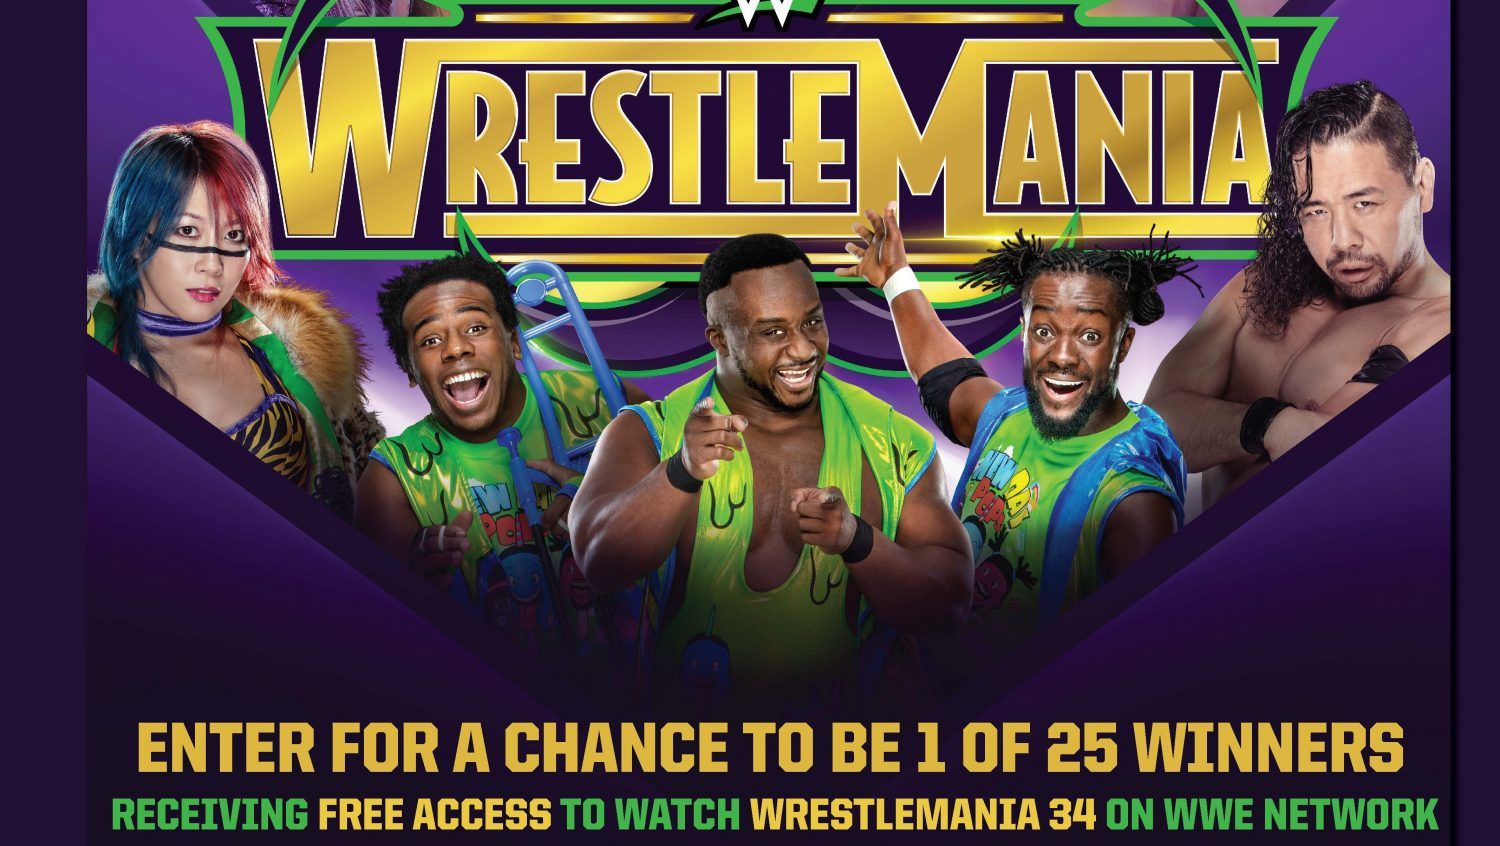 Don't Tap Out! Exchange Shoppers Can Win Free WrestleMania Access Code